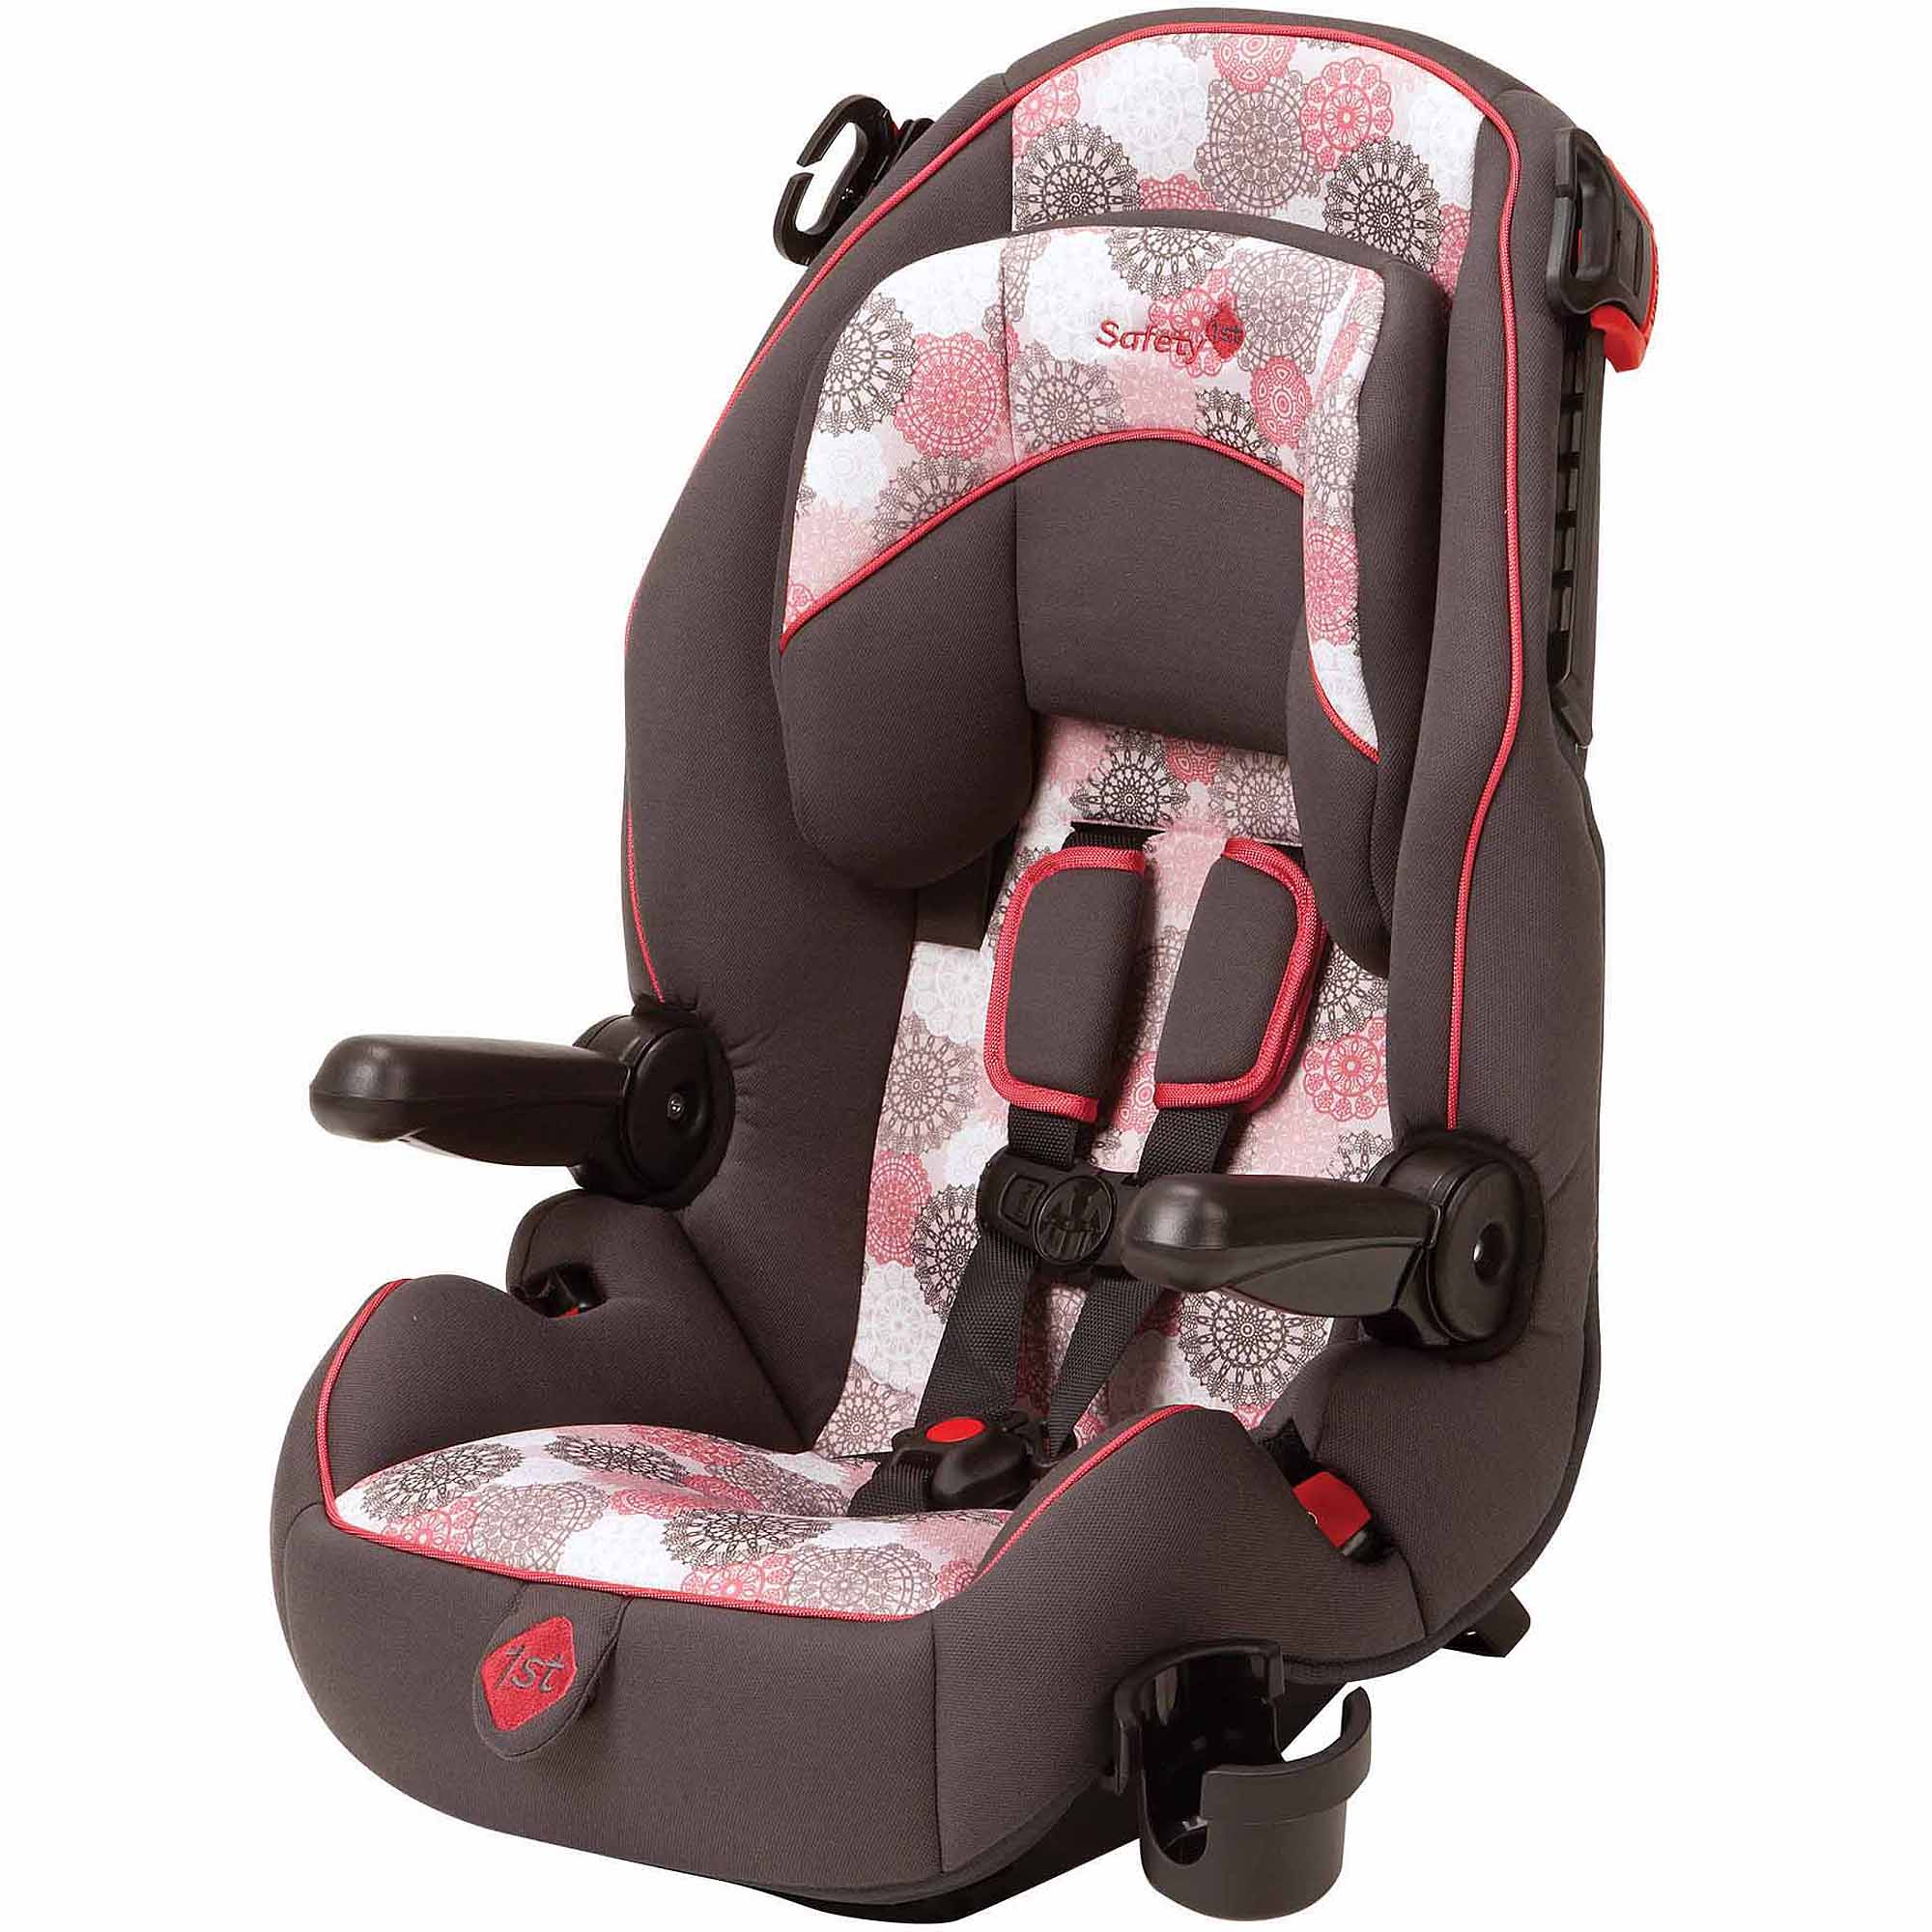 Safety 1st summit booster car seat chateau black